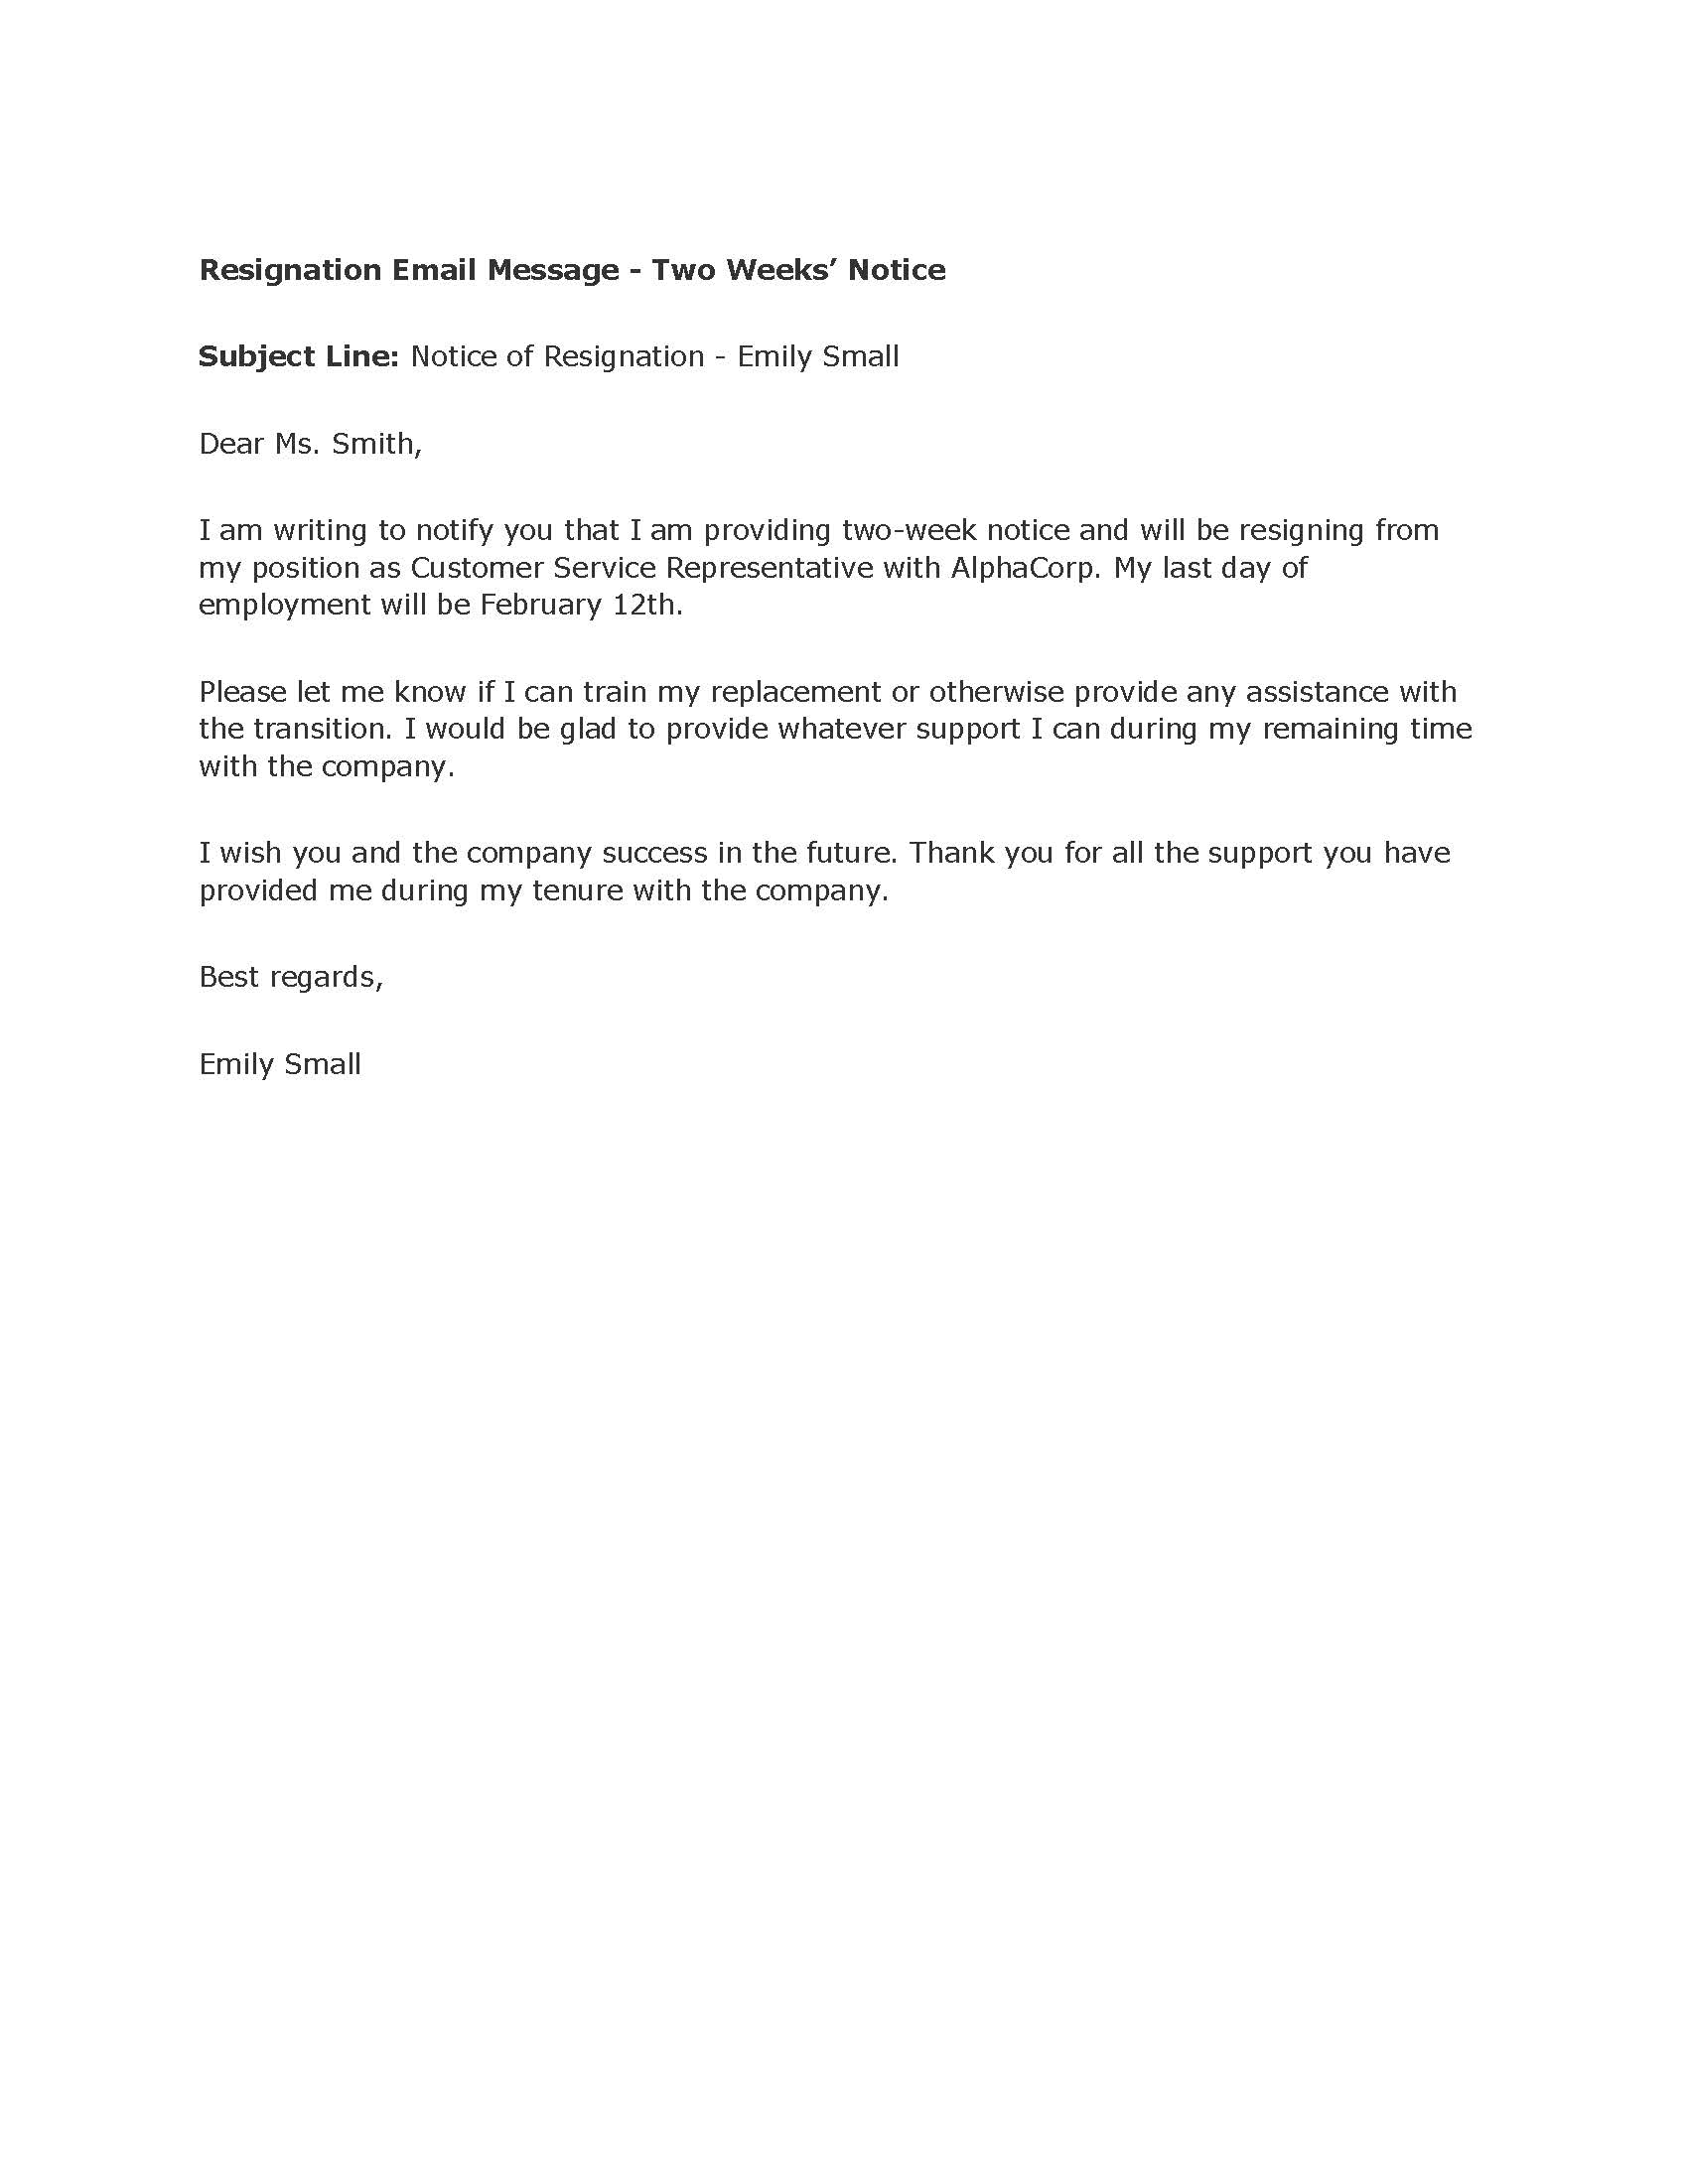 two weeks notice sample letter